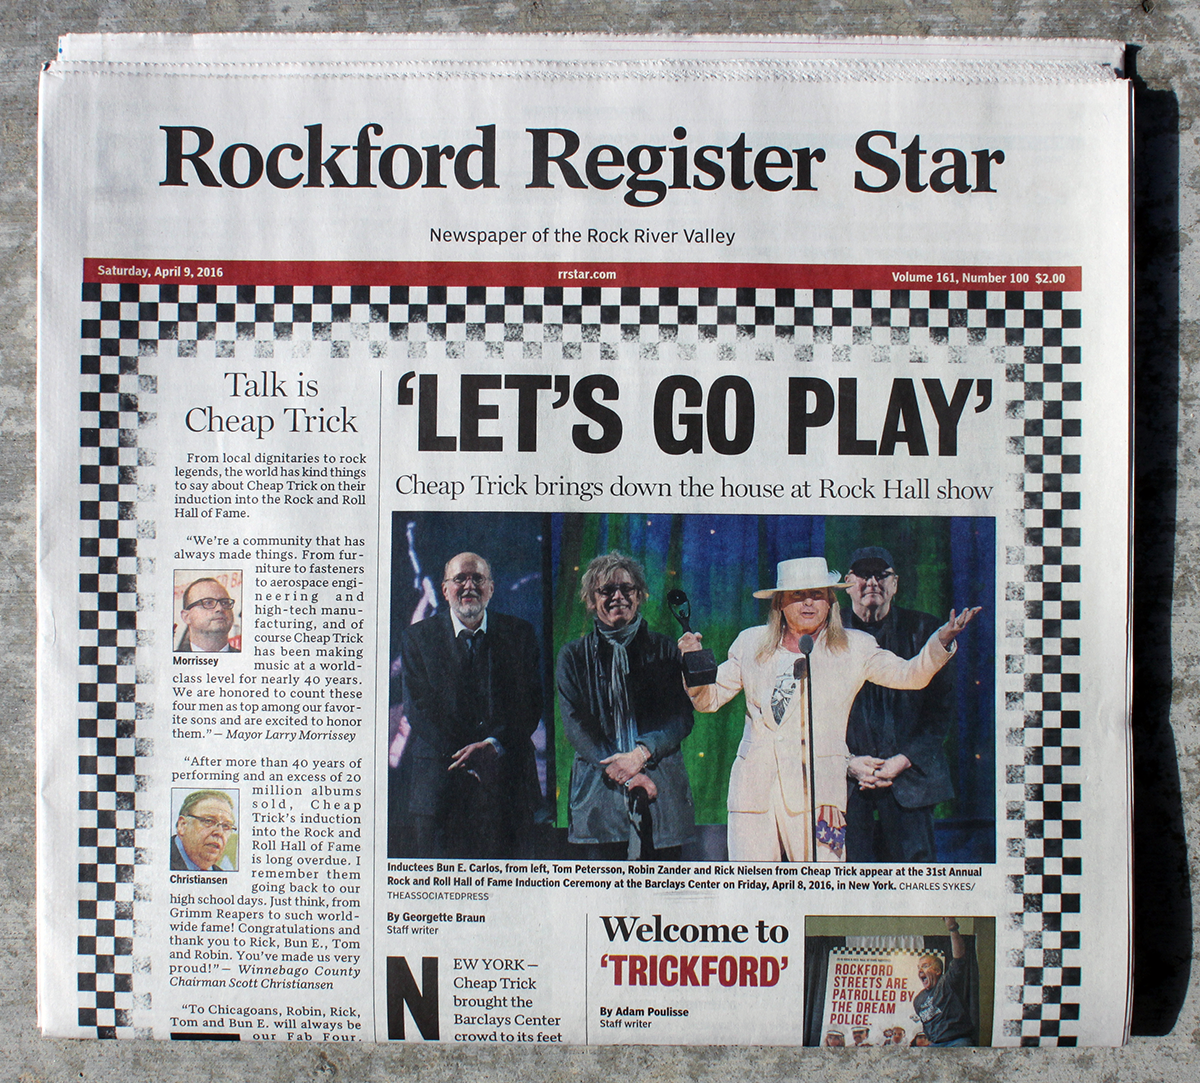 Rockford Register Star Newspaper